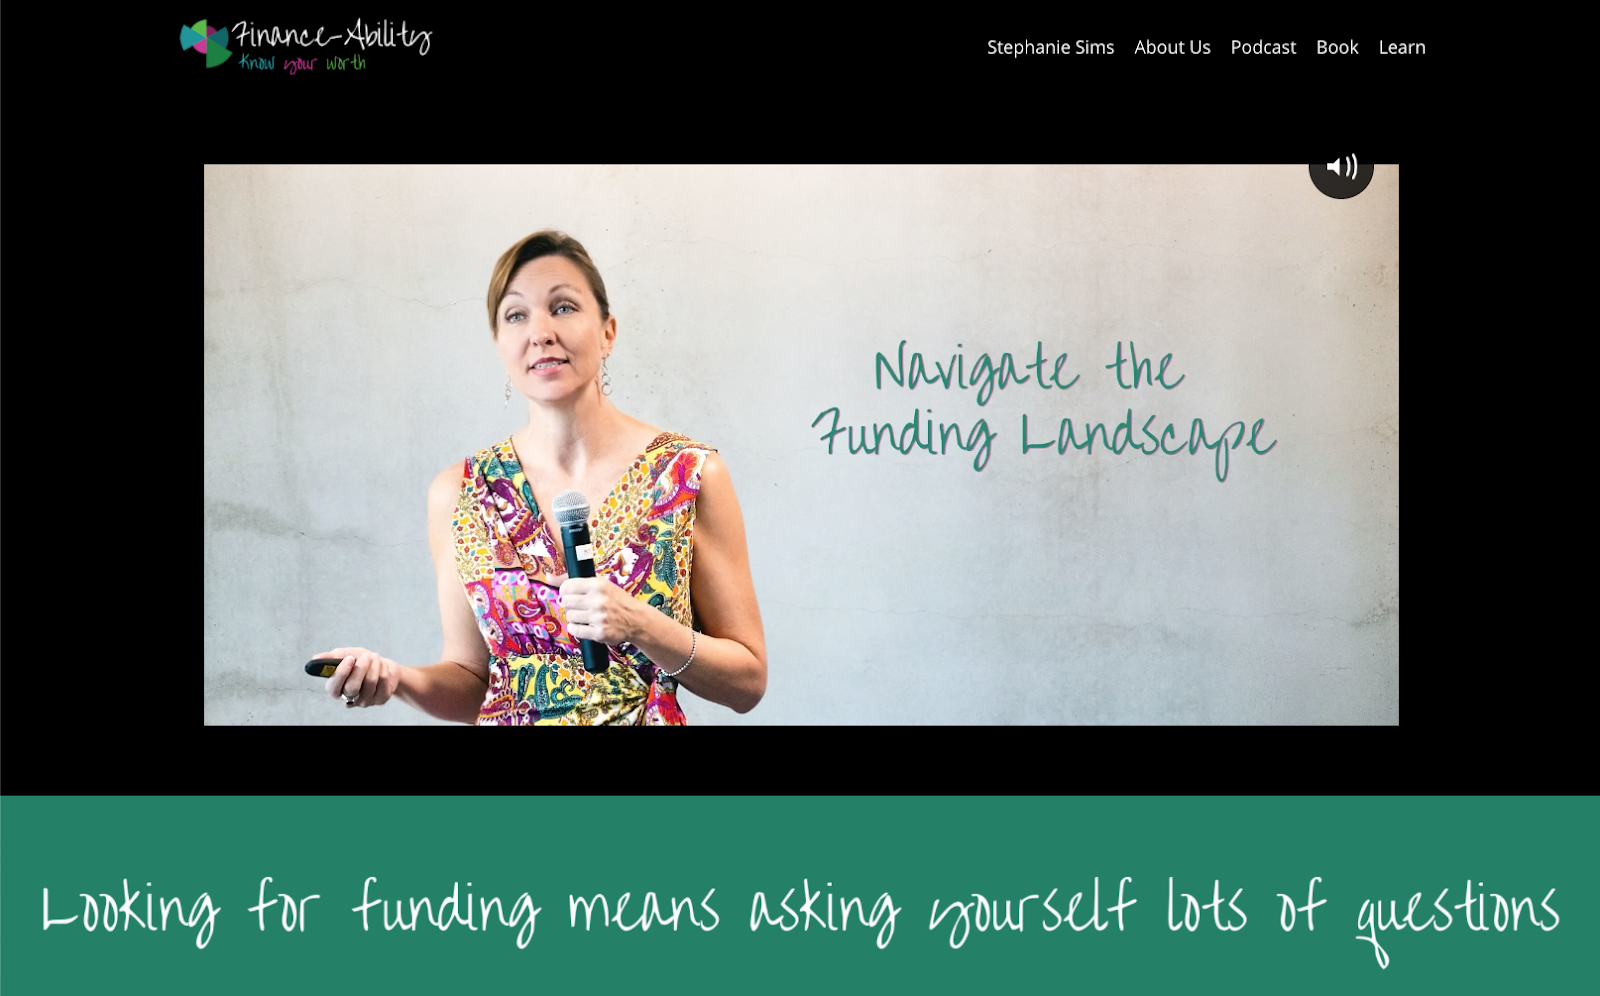 screenshot of the Finance-Ability website with an image of a woman speaking into a microphone with the copy Navigate the Funding Landscape and Looking for funding means asking yourself lots of questions